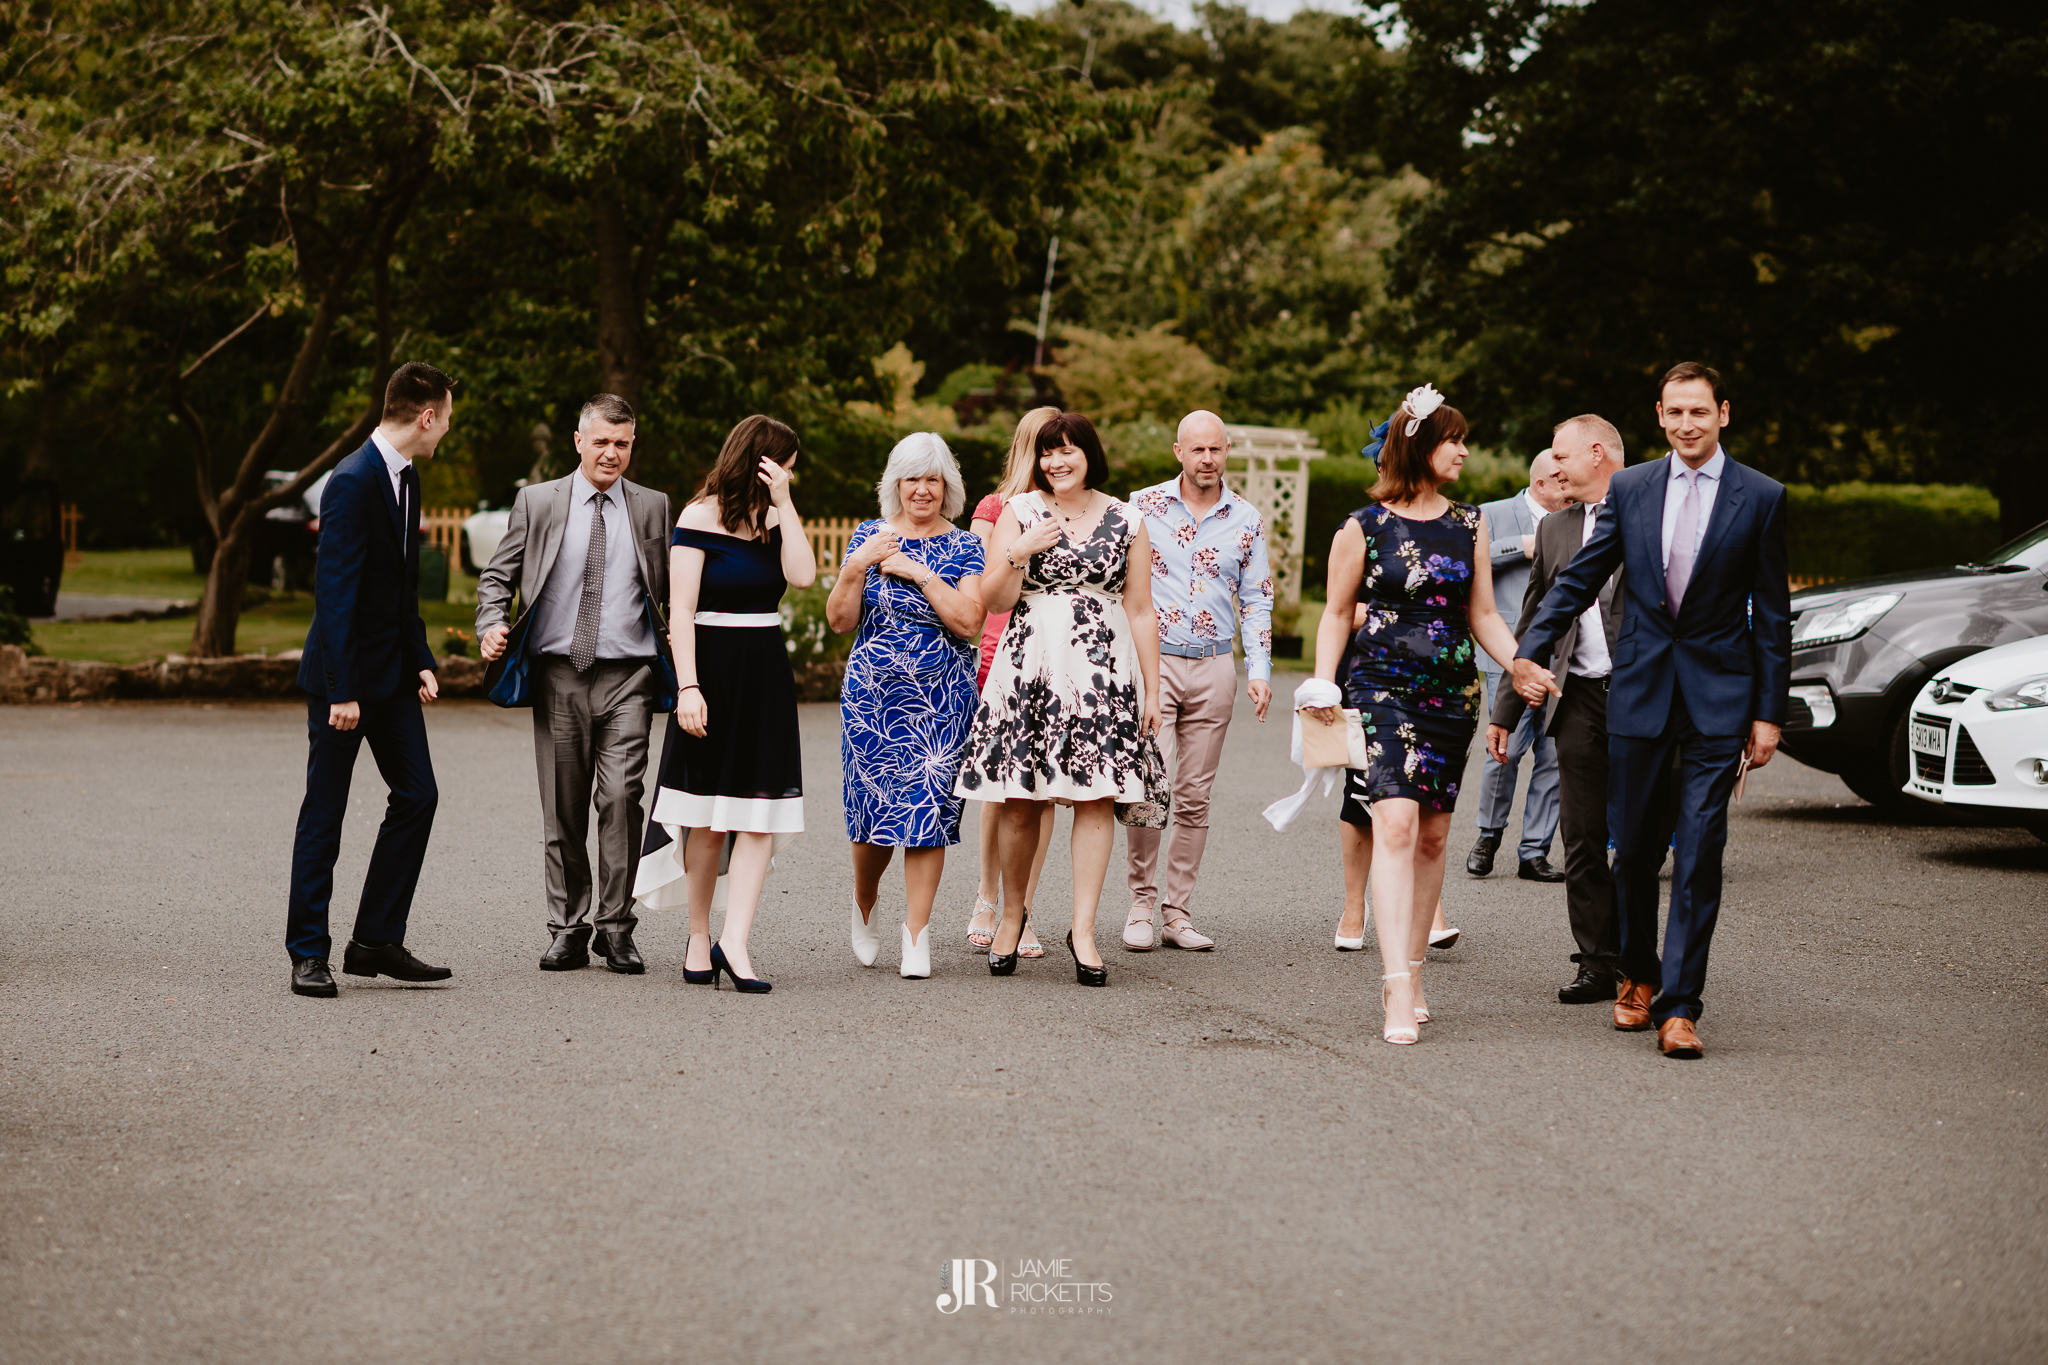 Wroxeter-Hotel-Wedding-Photography-In-Shropshire-By-Shropshire-Wedding-Photographer-Jamie-Ricketts-082.JPG